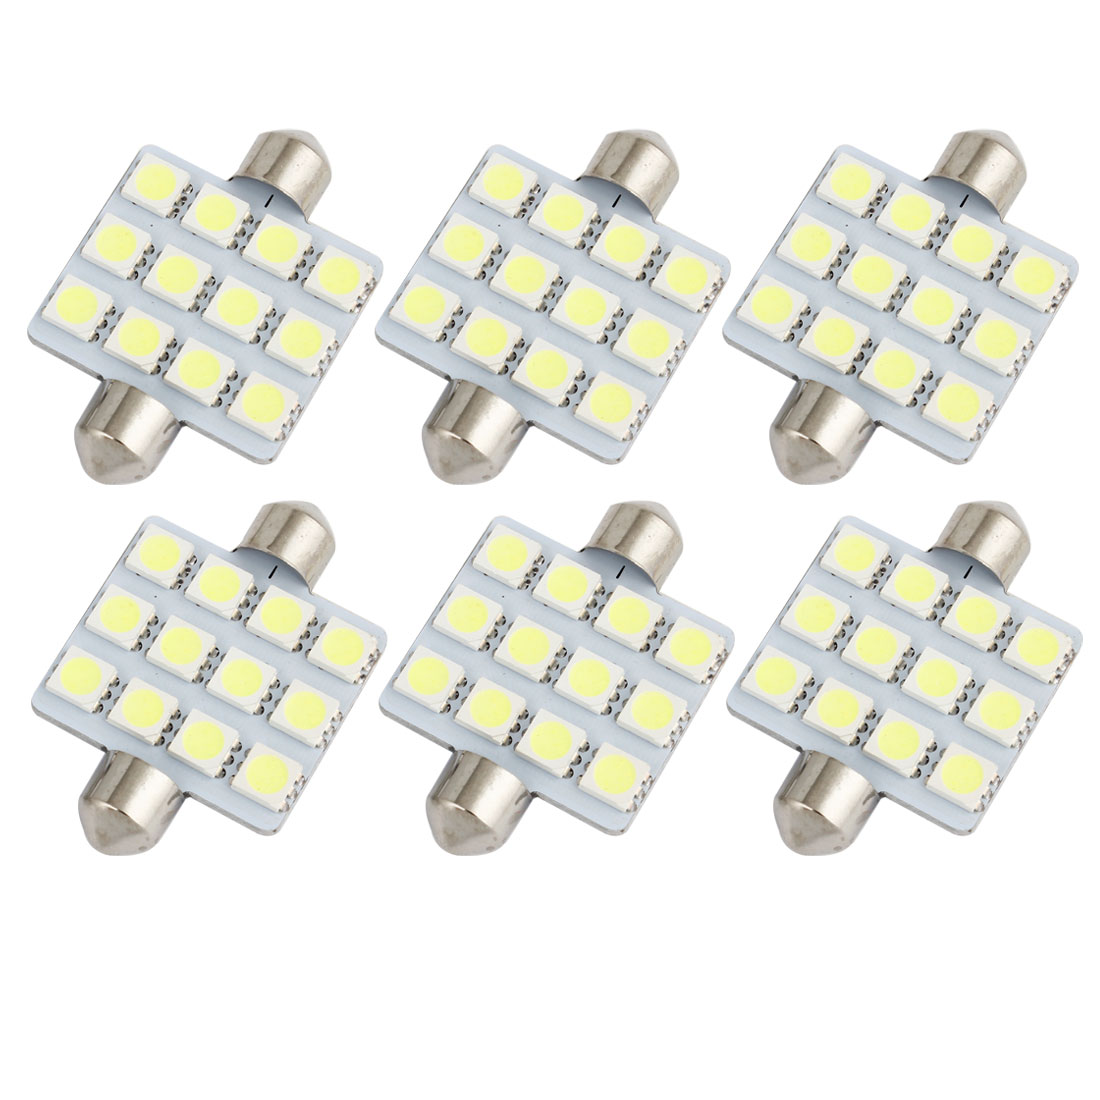 6pcs 41mm 5050 SMD 12-LED Festoon Dome Light White 6413 211-2 212-2 560 Internal